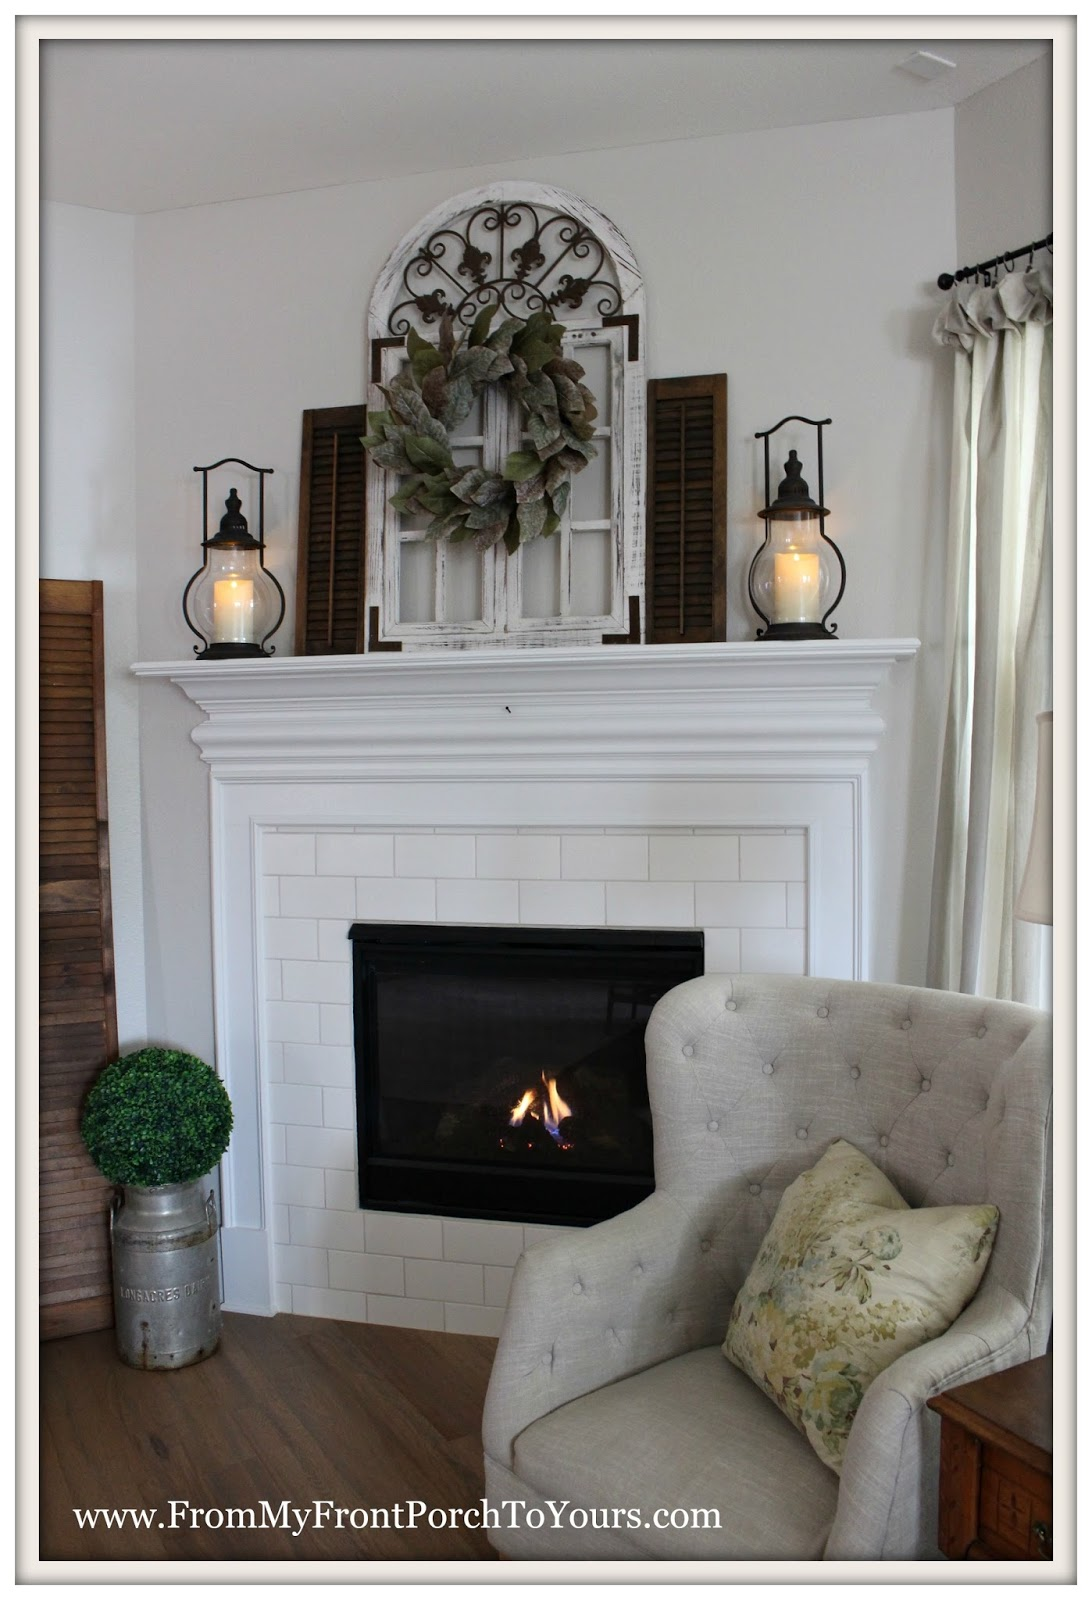 From my front porch to yours farmhouse fireplace mantel for Farmhouse fireplace decor